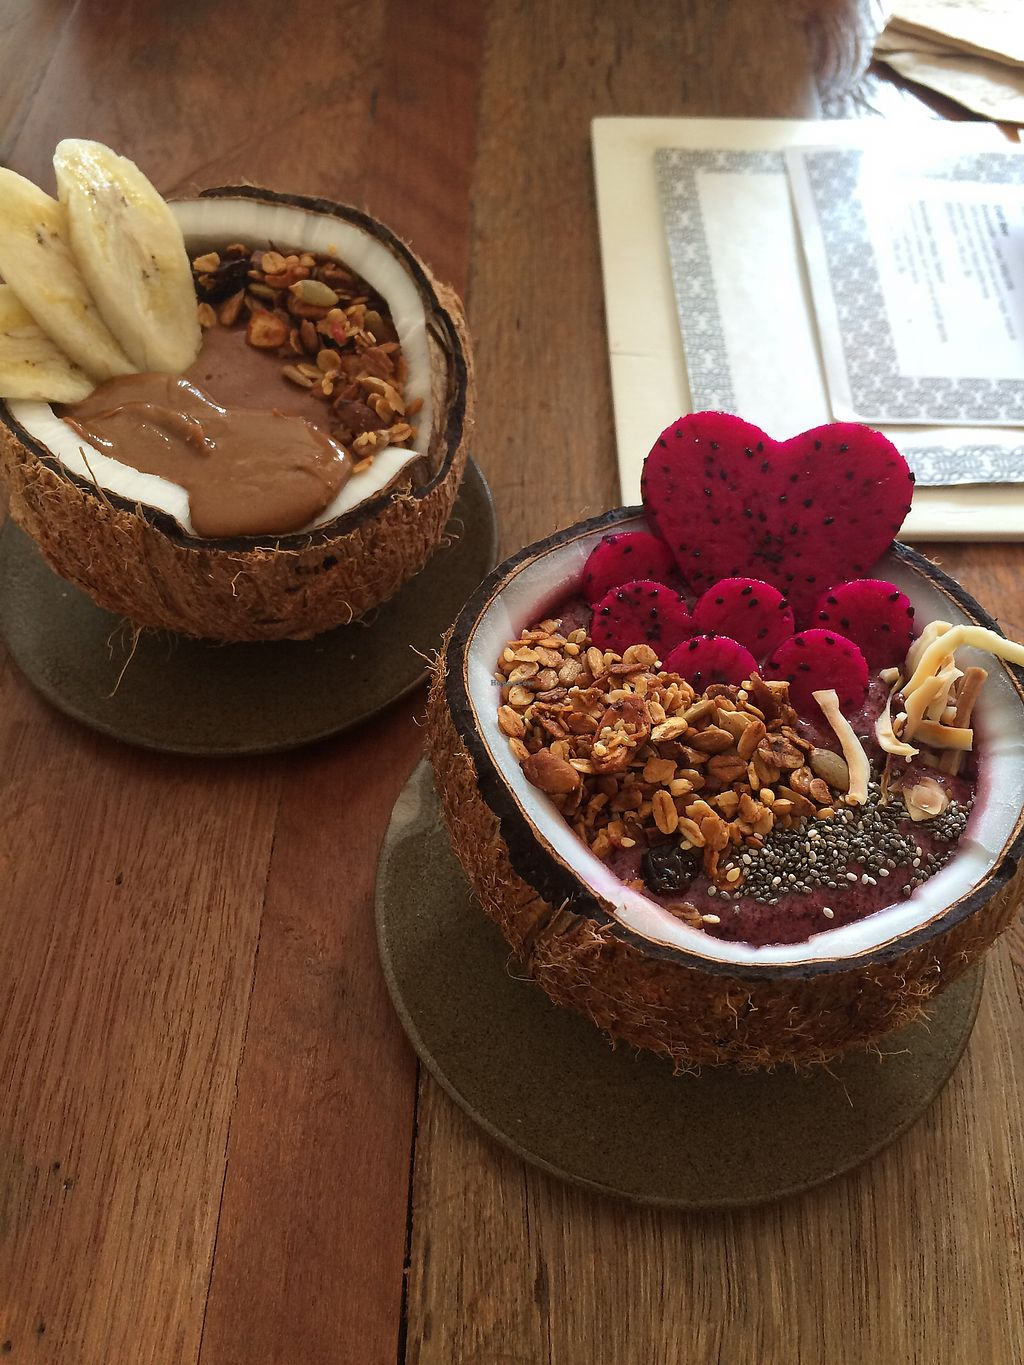 "Photo of Vibe Cafe  by <a href=""/members/profile/HungryEaters"">HungryEaters</a> <br/>Yummy bowls (chocolate and amazonian) <br/> October 18, 2017  - <a href='/contact/abuse/image/80904/316224'>Report</a>"